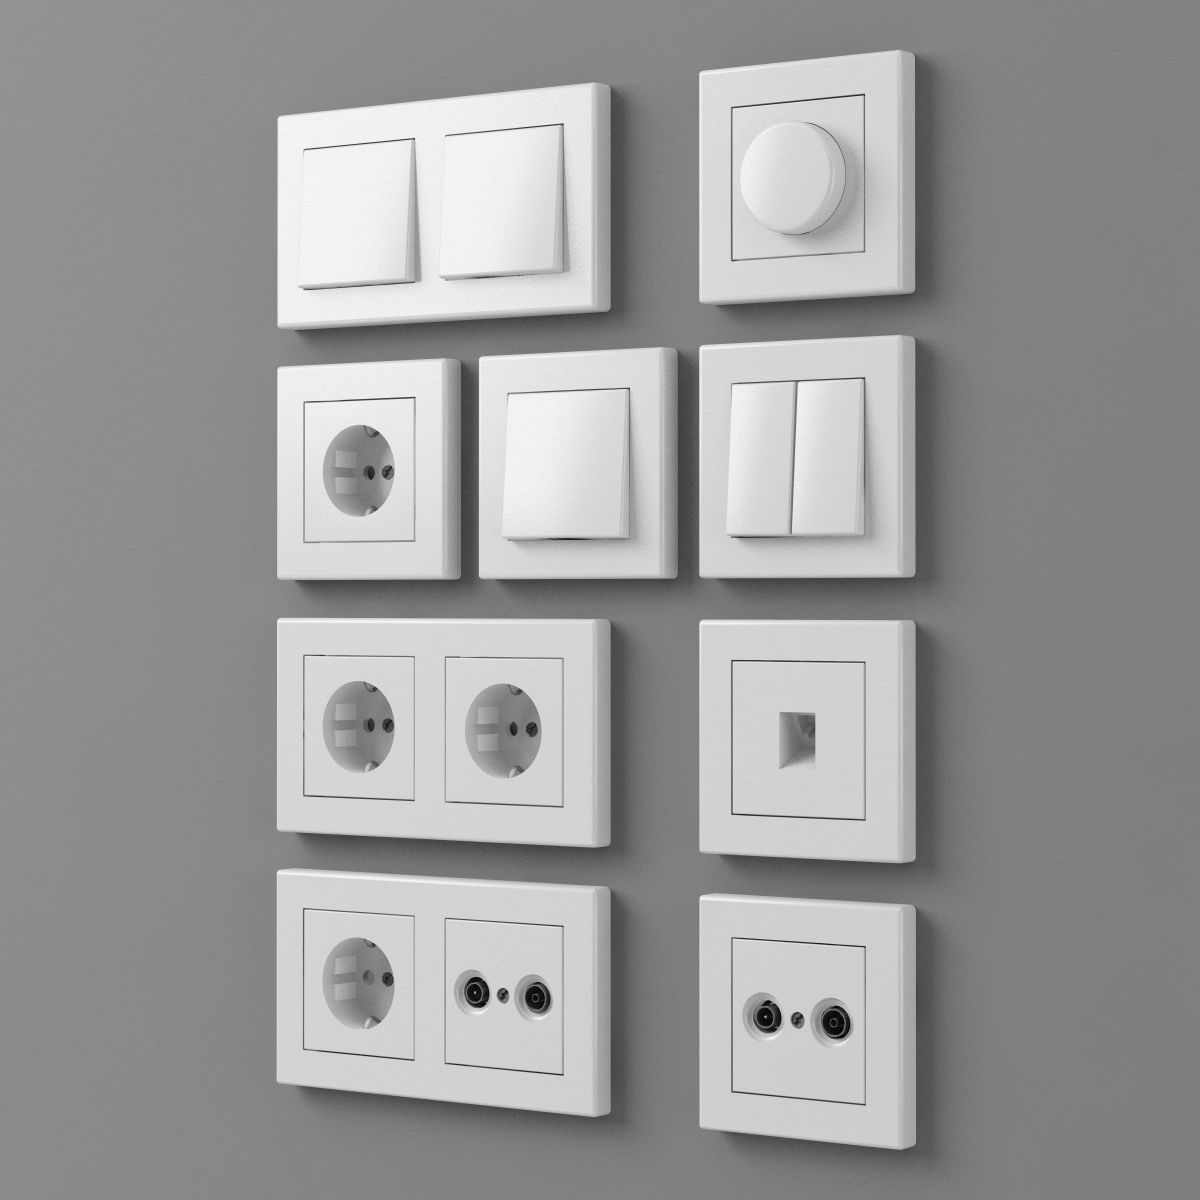 European outlets and switches 1 - electrical